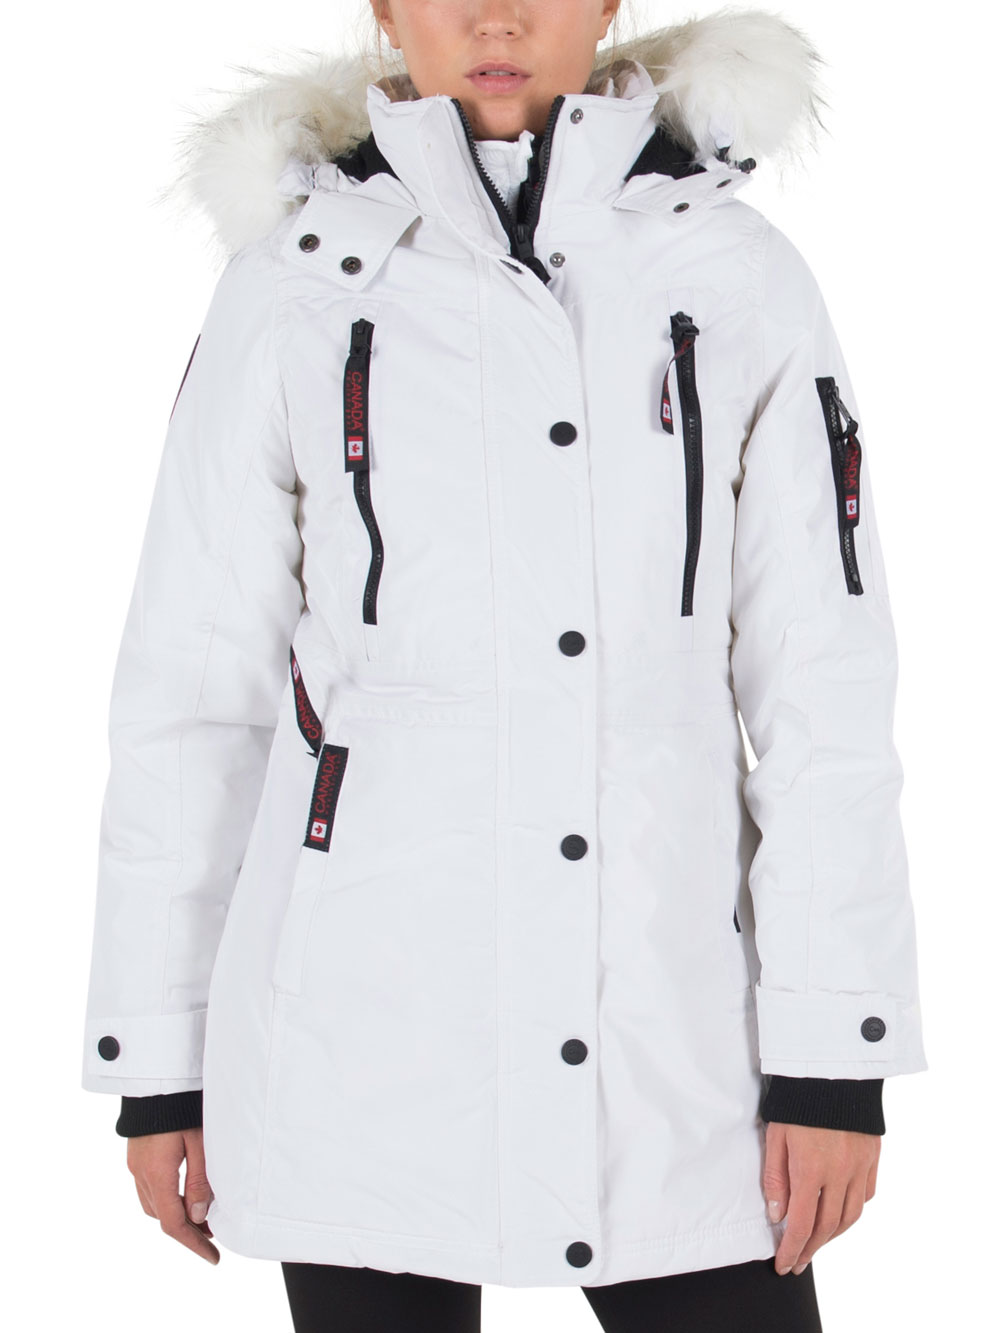 Insulated About Canada Plus Details Gear Parka Womens' Weather htQCsrd